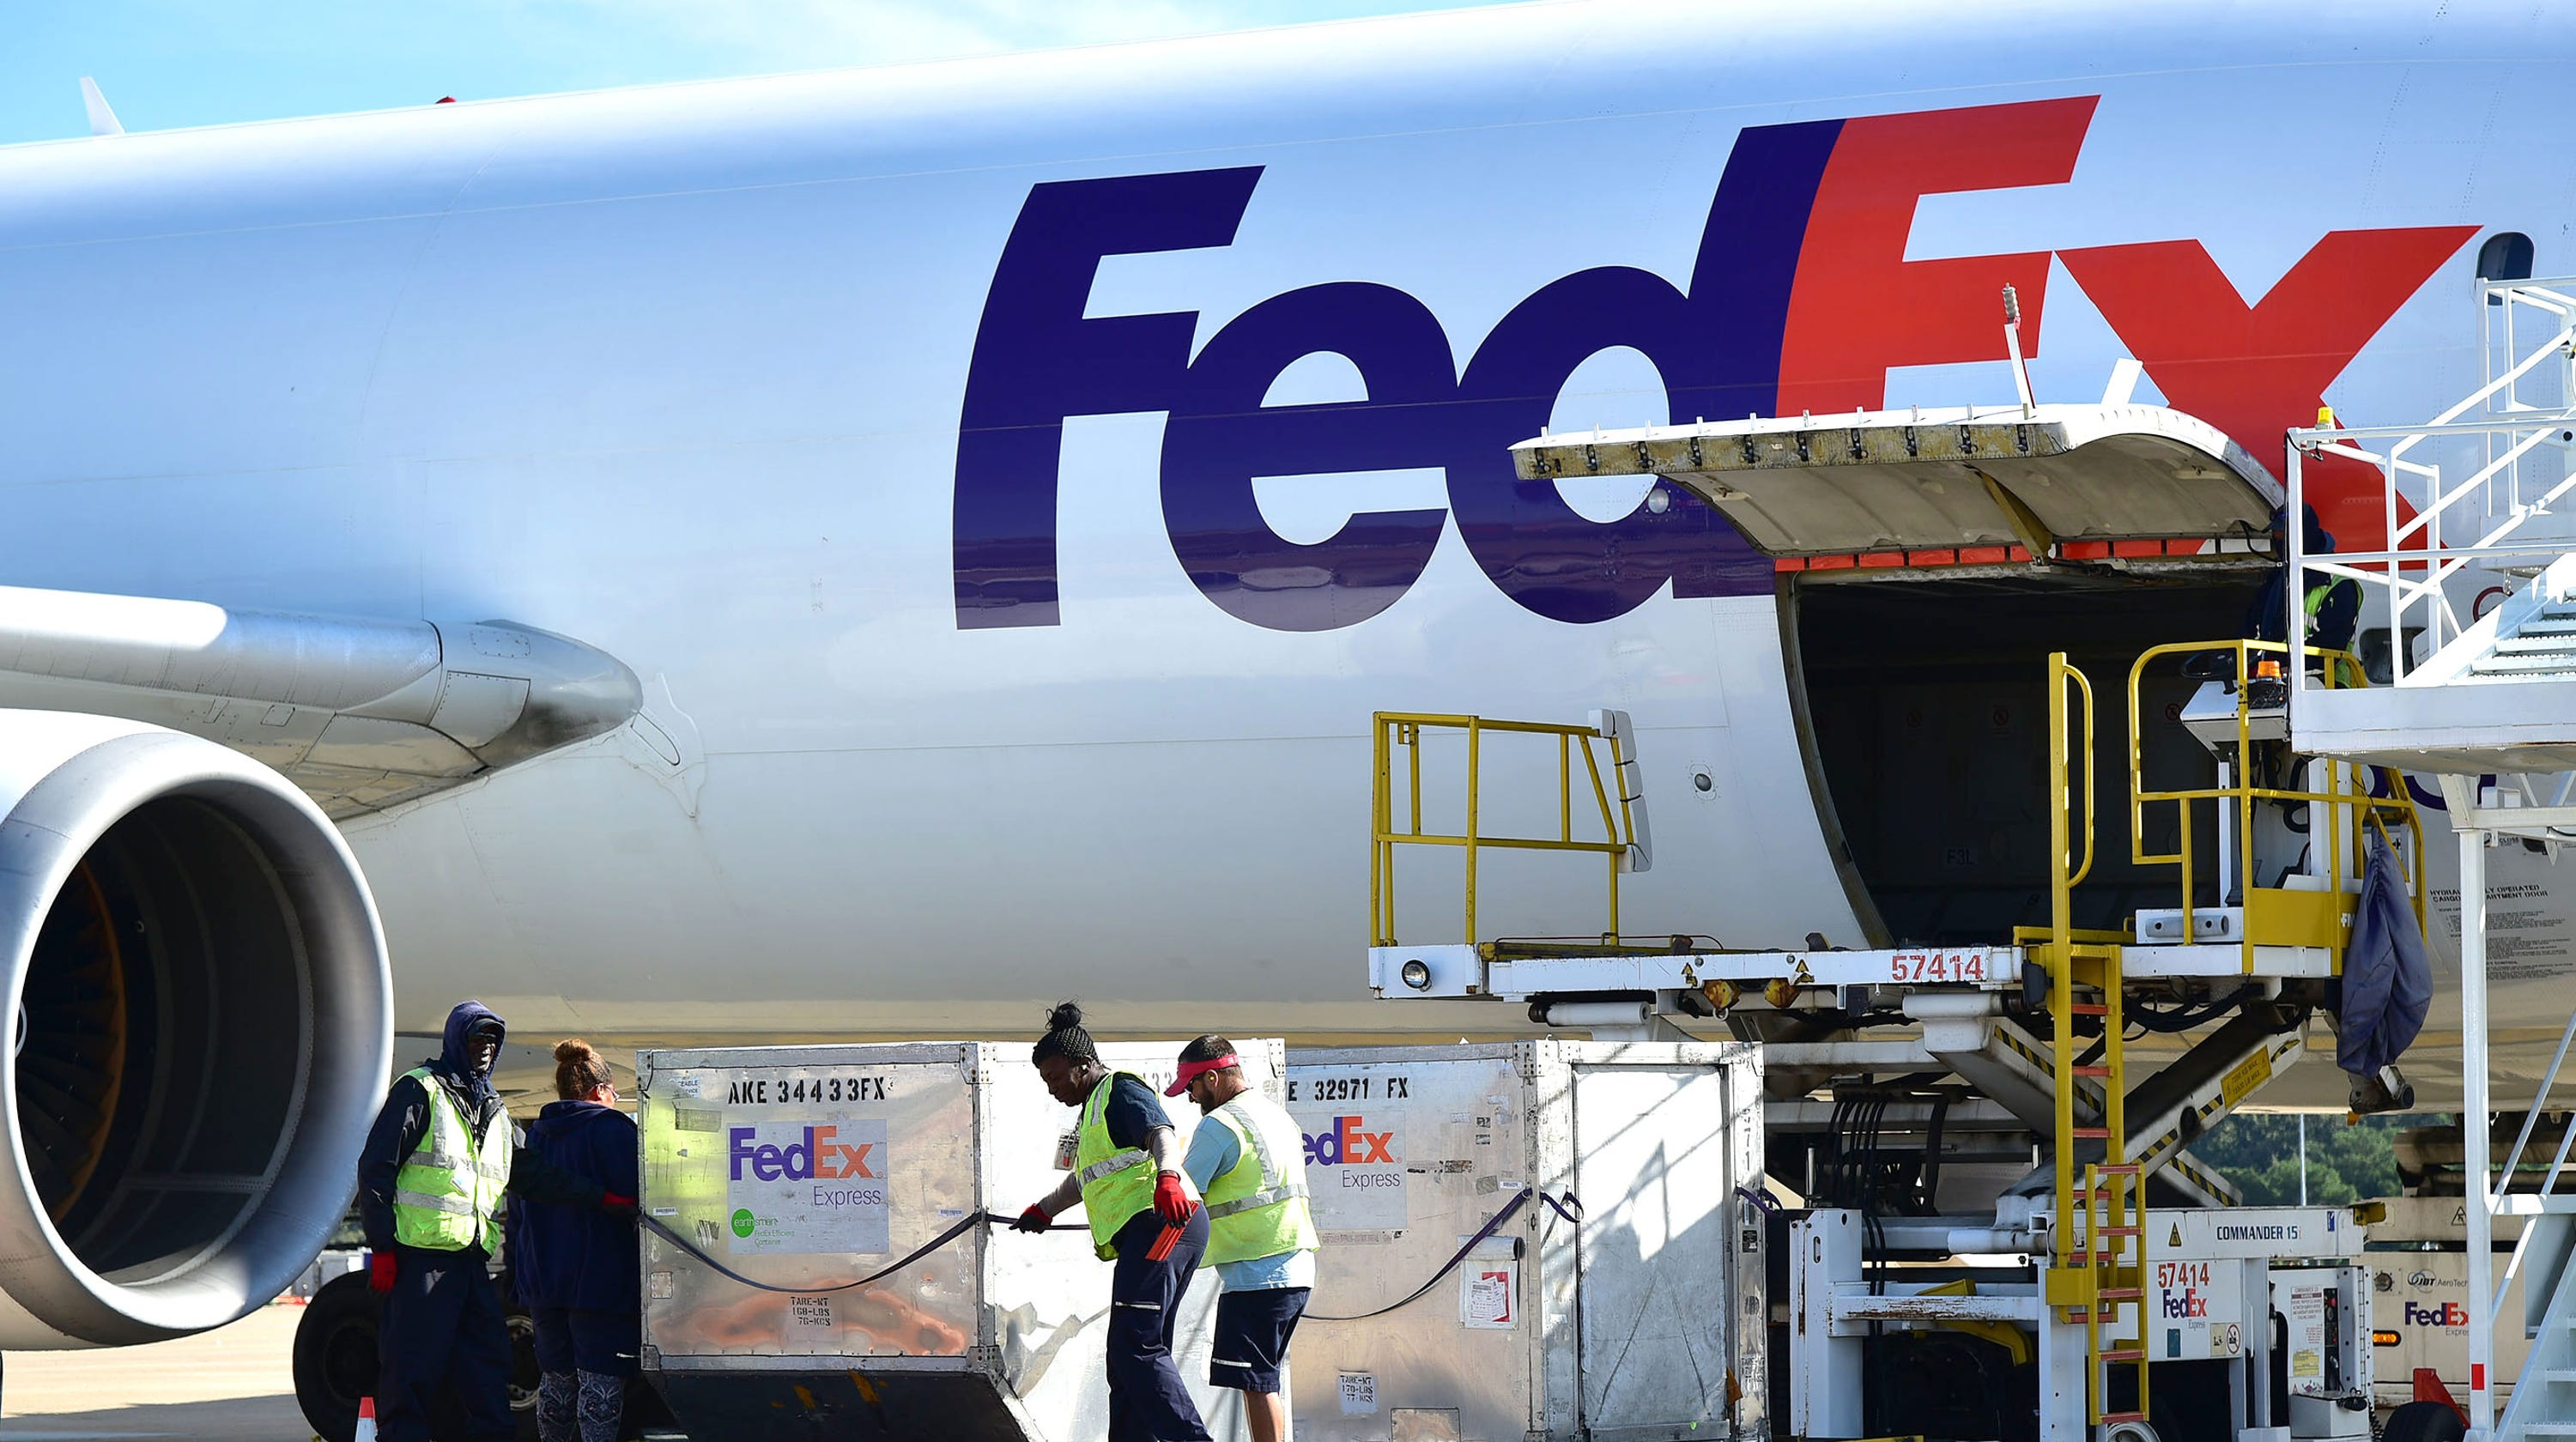 Amazon buying FedEx possible, analysts say, but does it make sense?